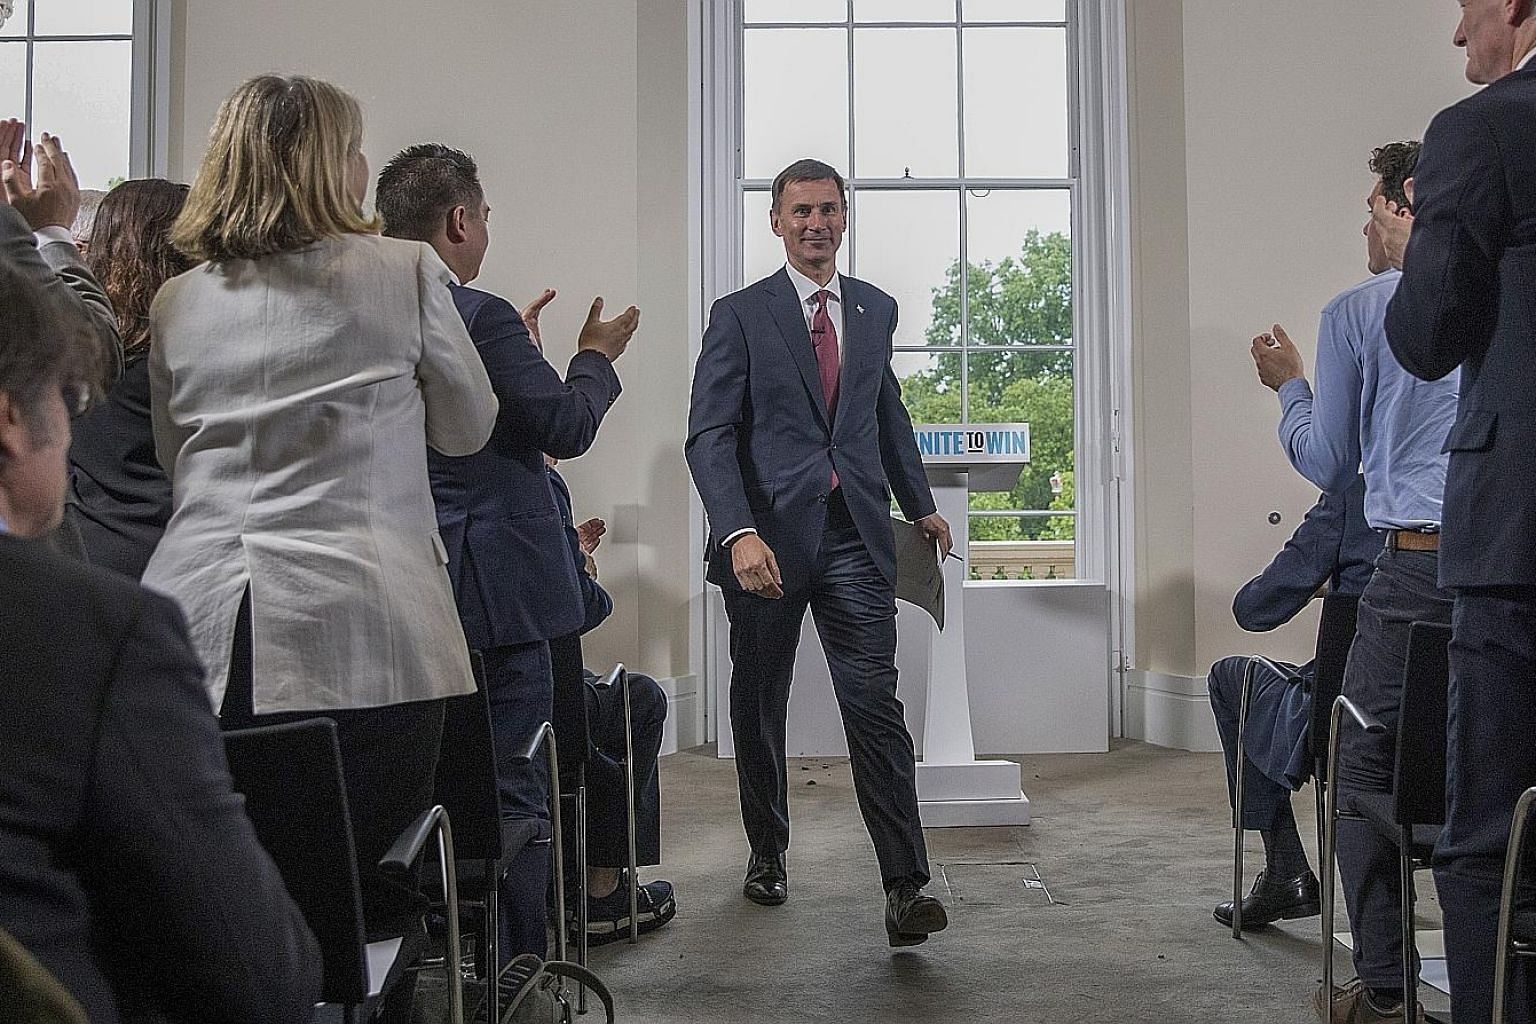 British Foreign Minister Jeremy Hunt after delivering his speech at the launch of his campaign to be the next Conservative Party leader, in London yesterday. Mrs Theresa May stepped down as leader of the party last Friday, and nominations to replace